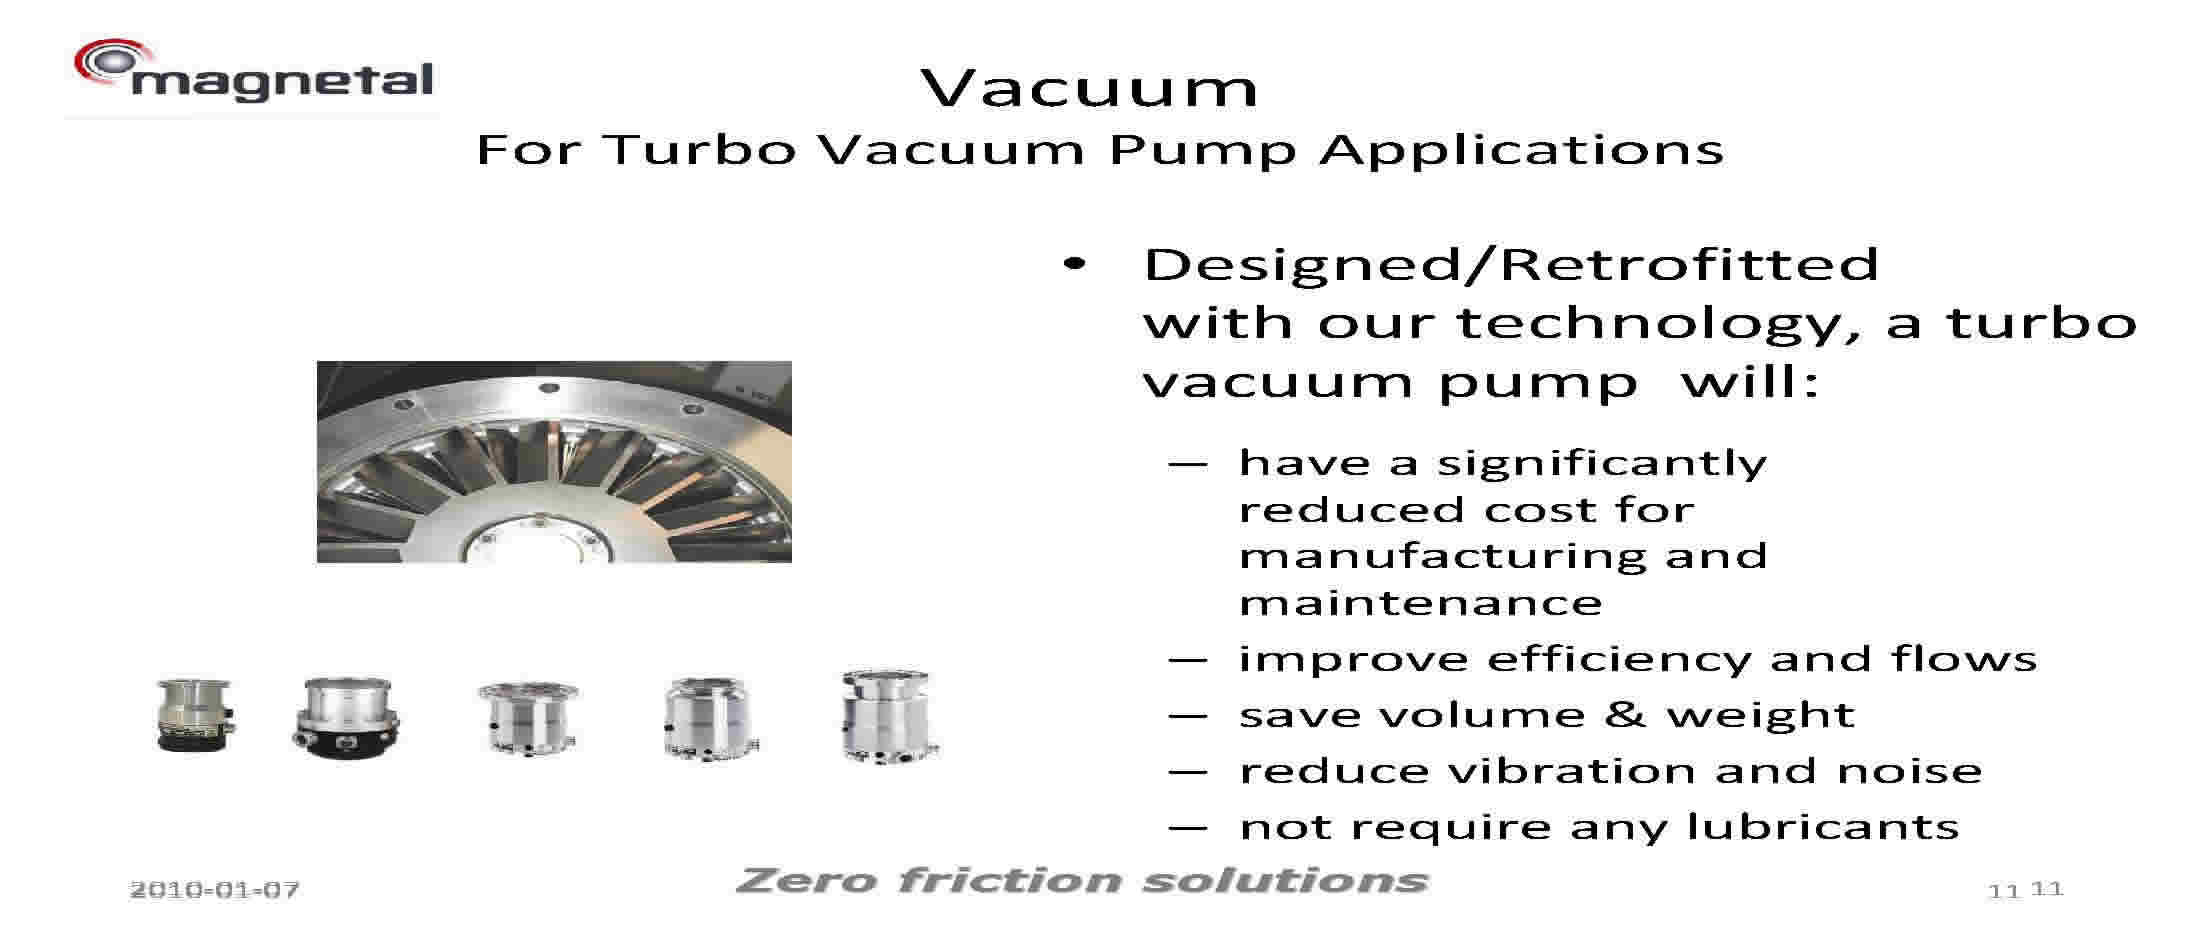 Added Value to Vacuum Industry by Using Magnetal Passive Magnetic Bearing Technology